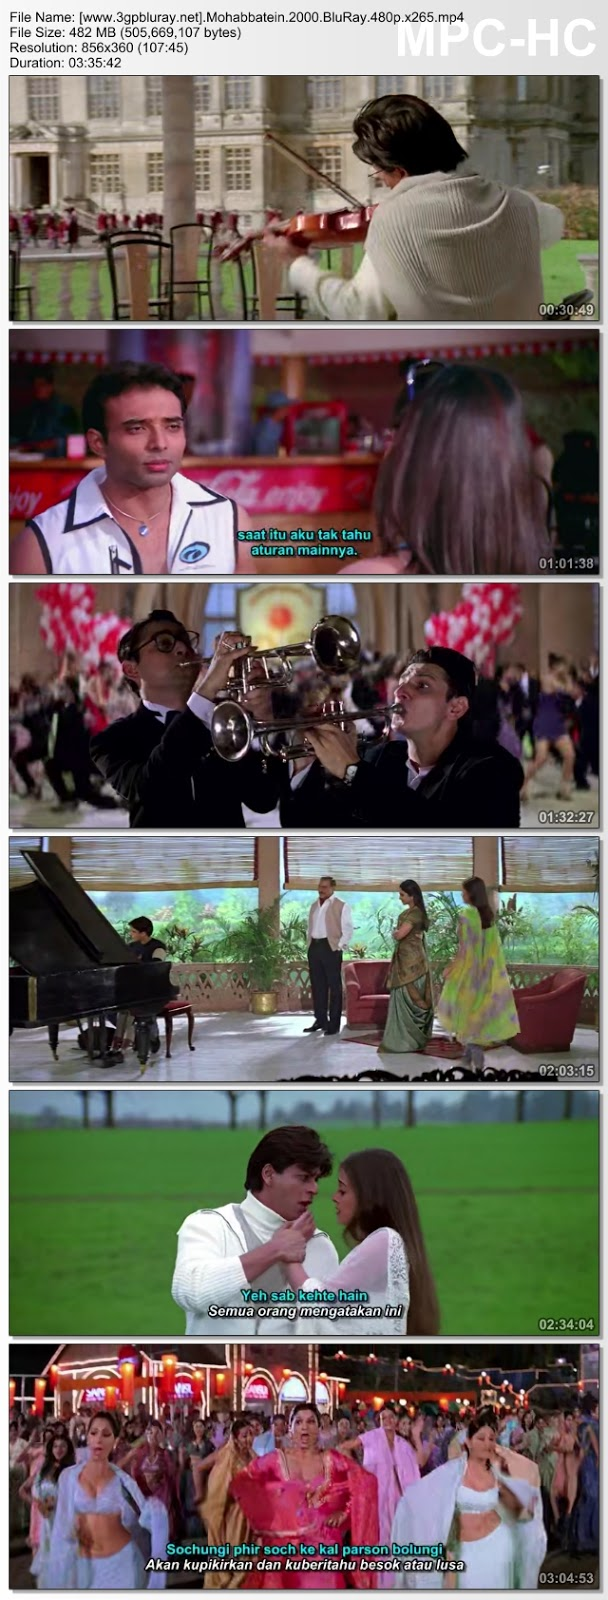 Screenshots Download Mohabbatein (2000) BluRay 480p & 3GP Subtitle Indonesia